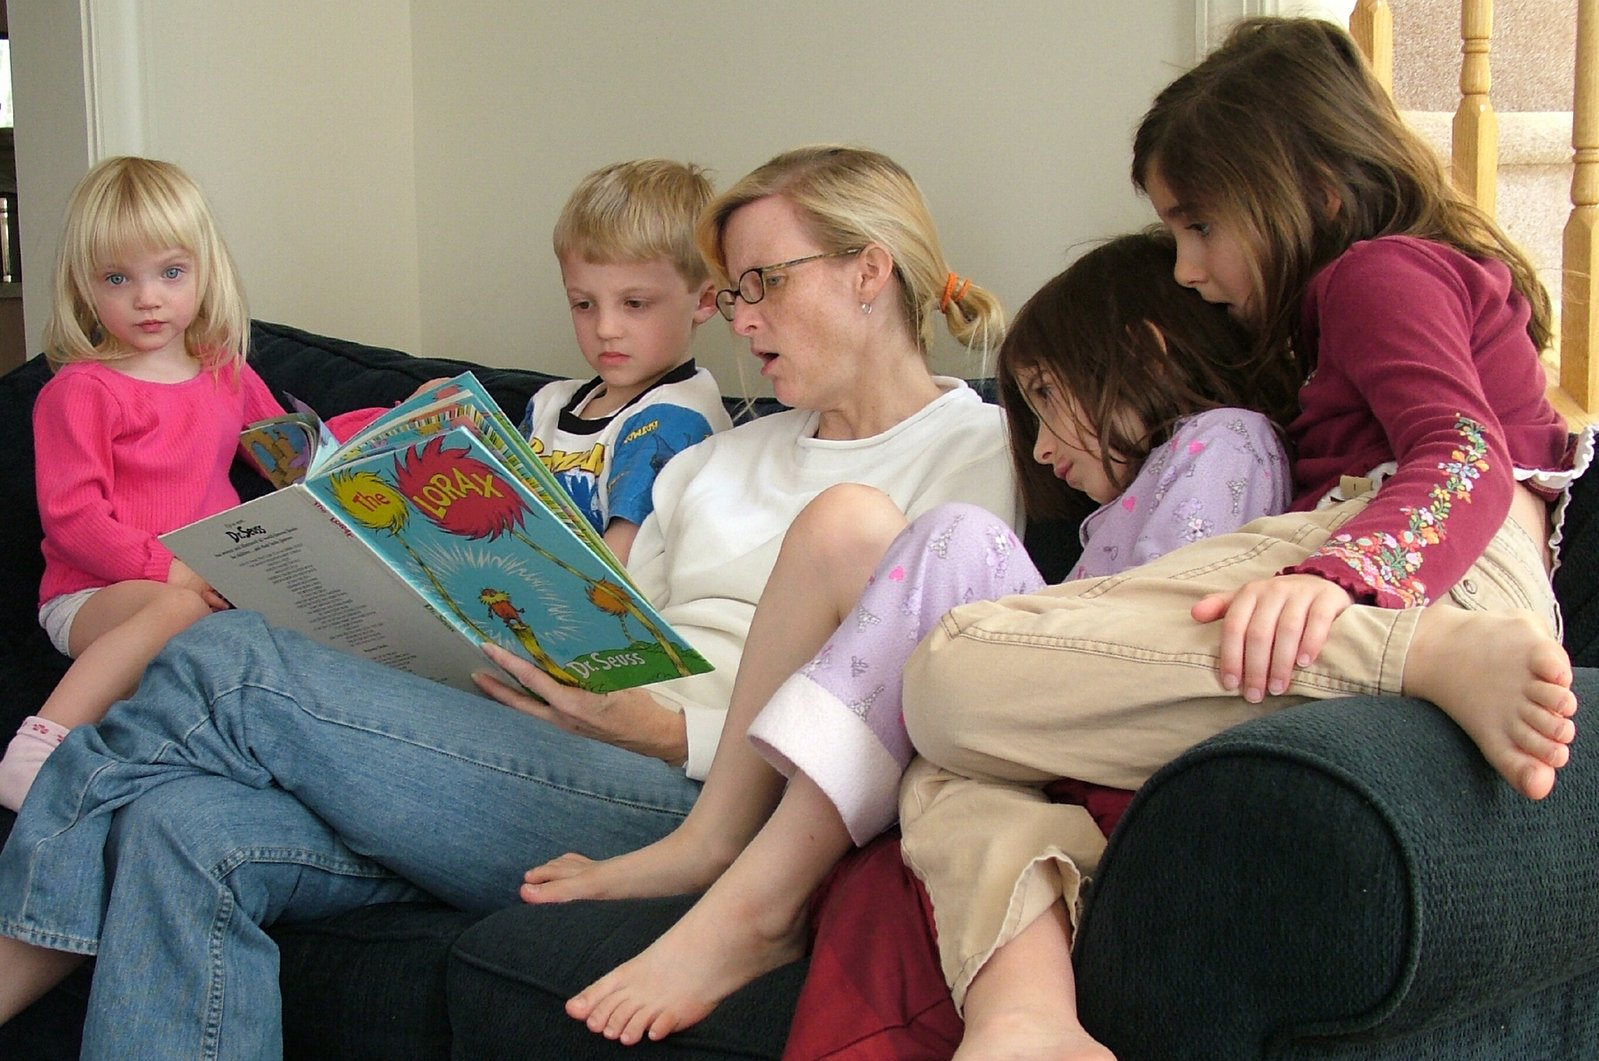 mother-reading-a-book-to-children-1438086